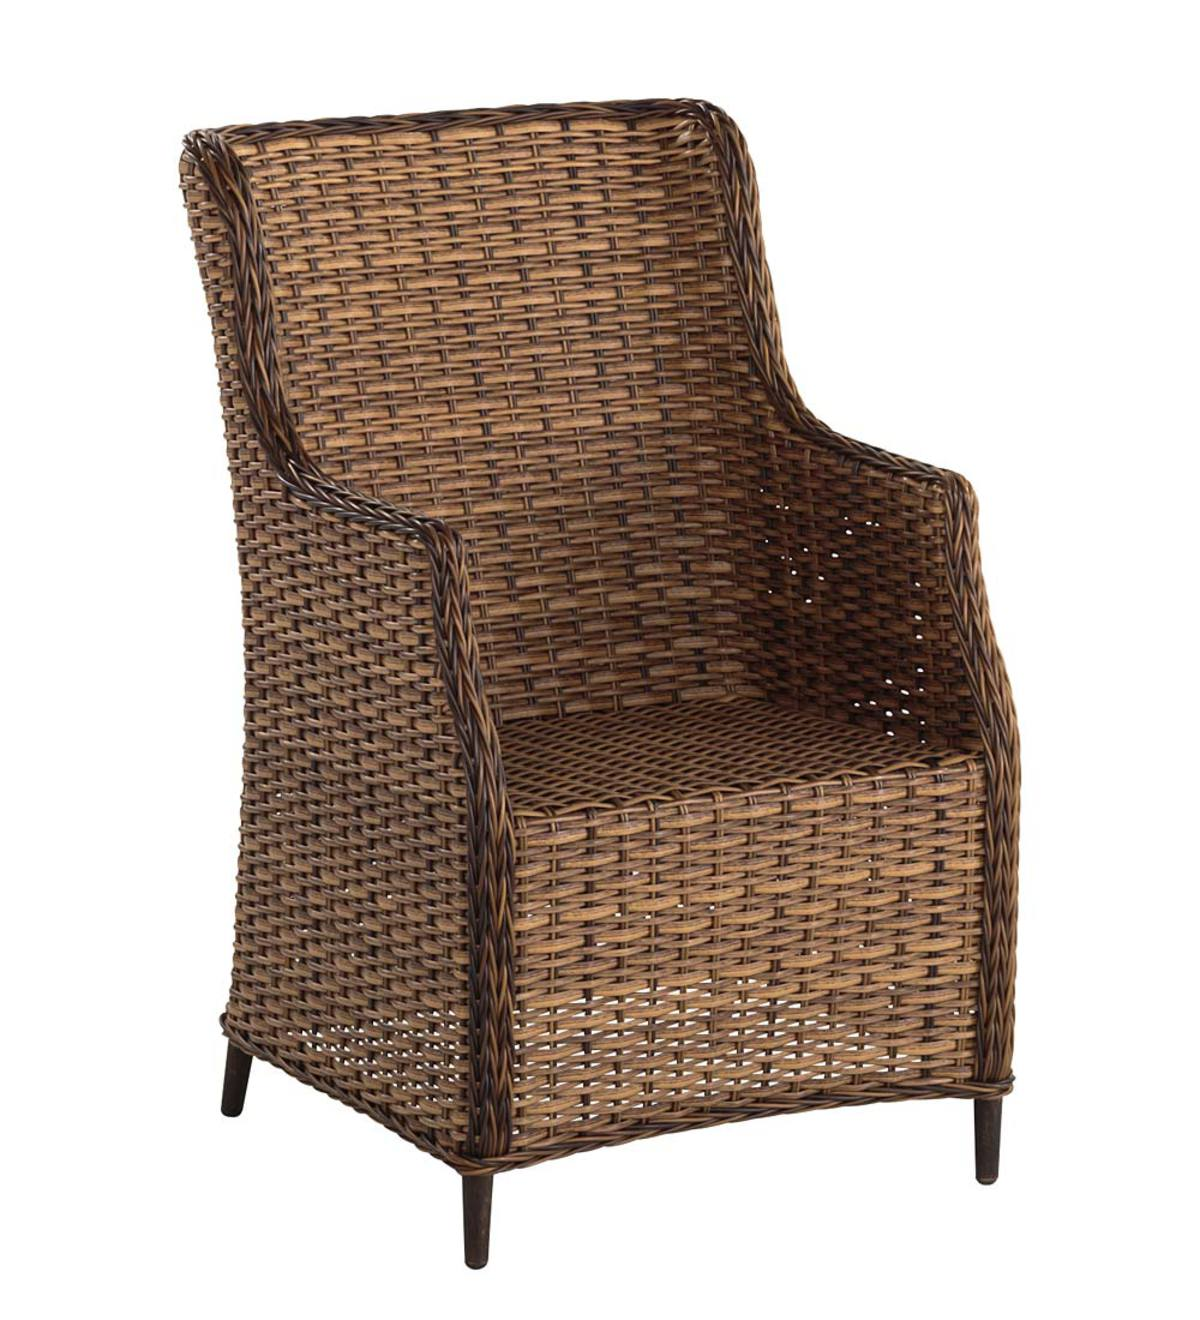 Highland Wicker Outdoor Dining Chair